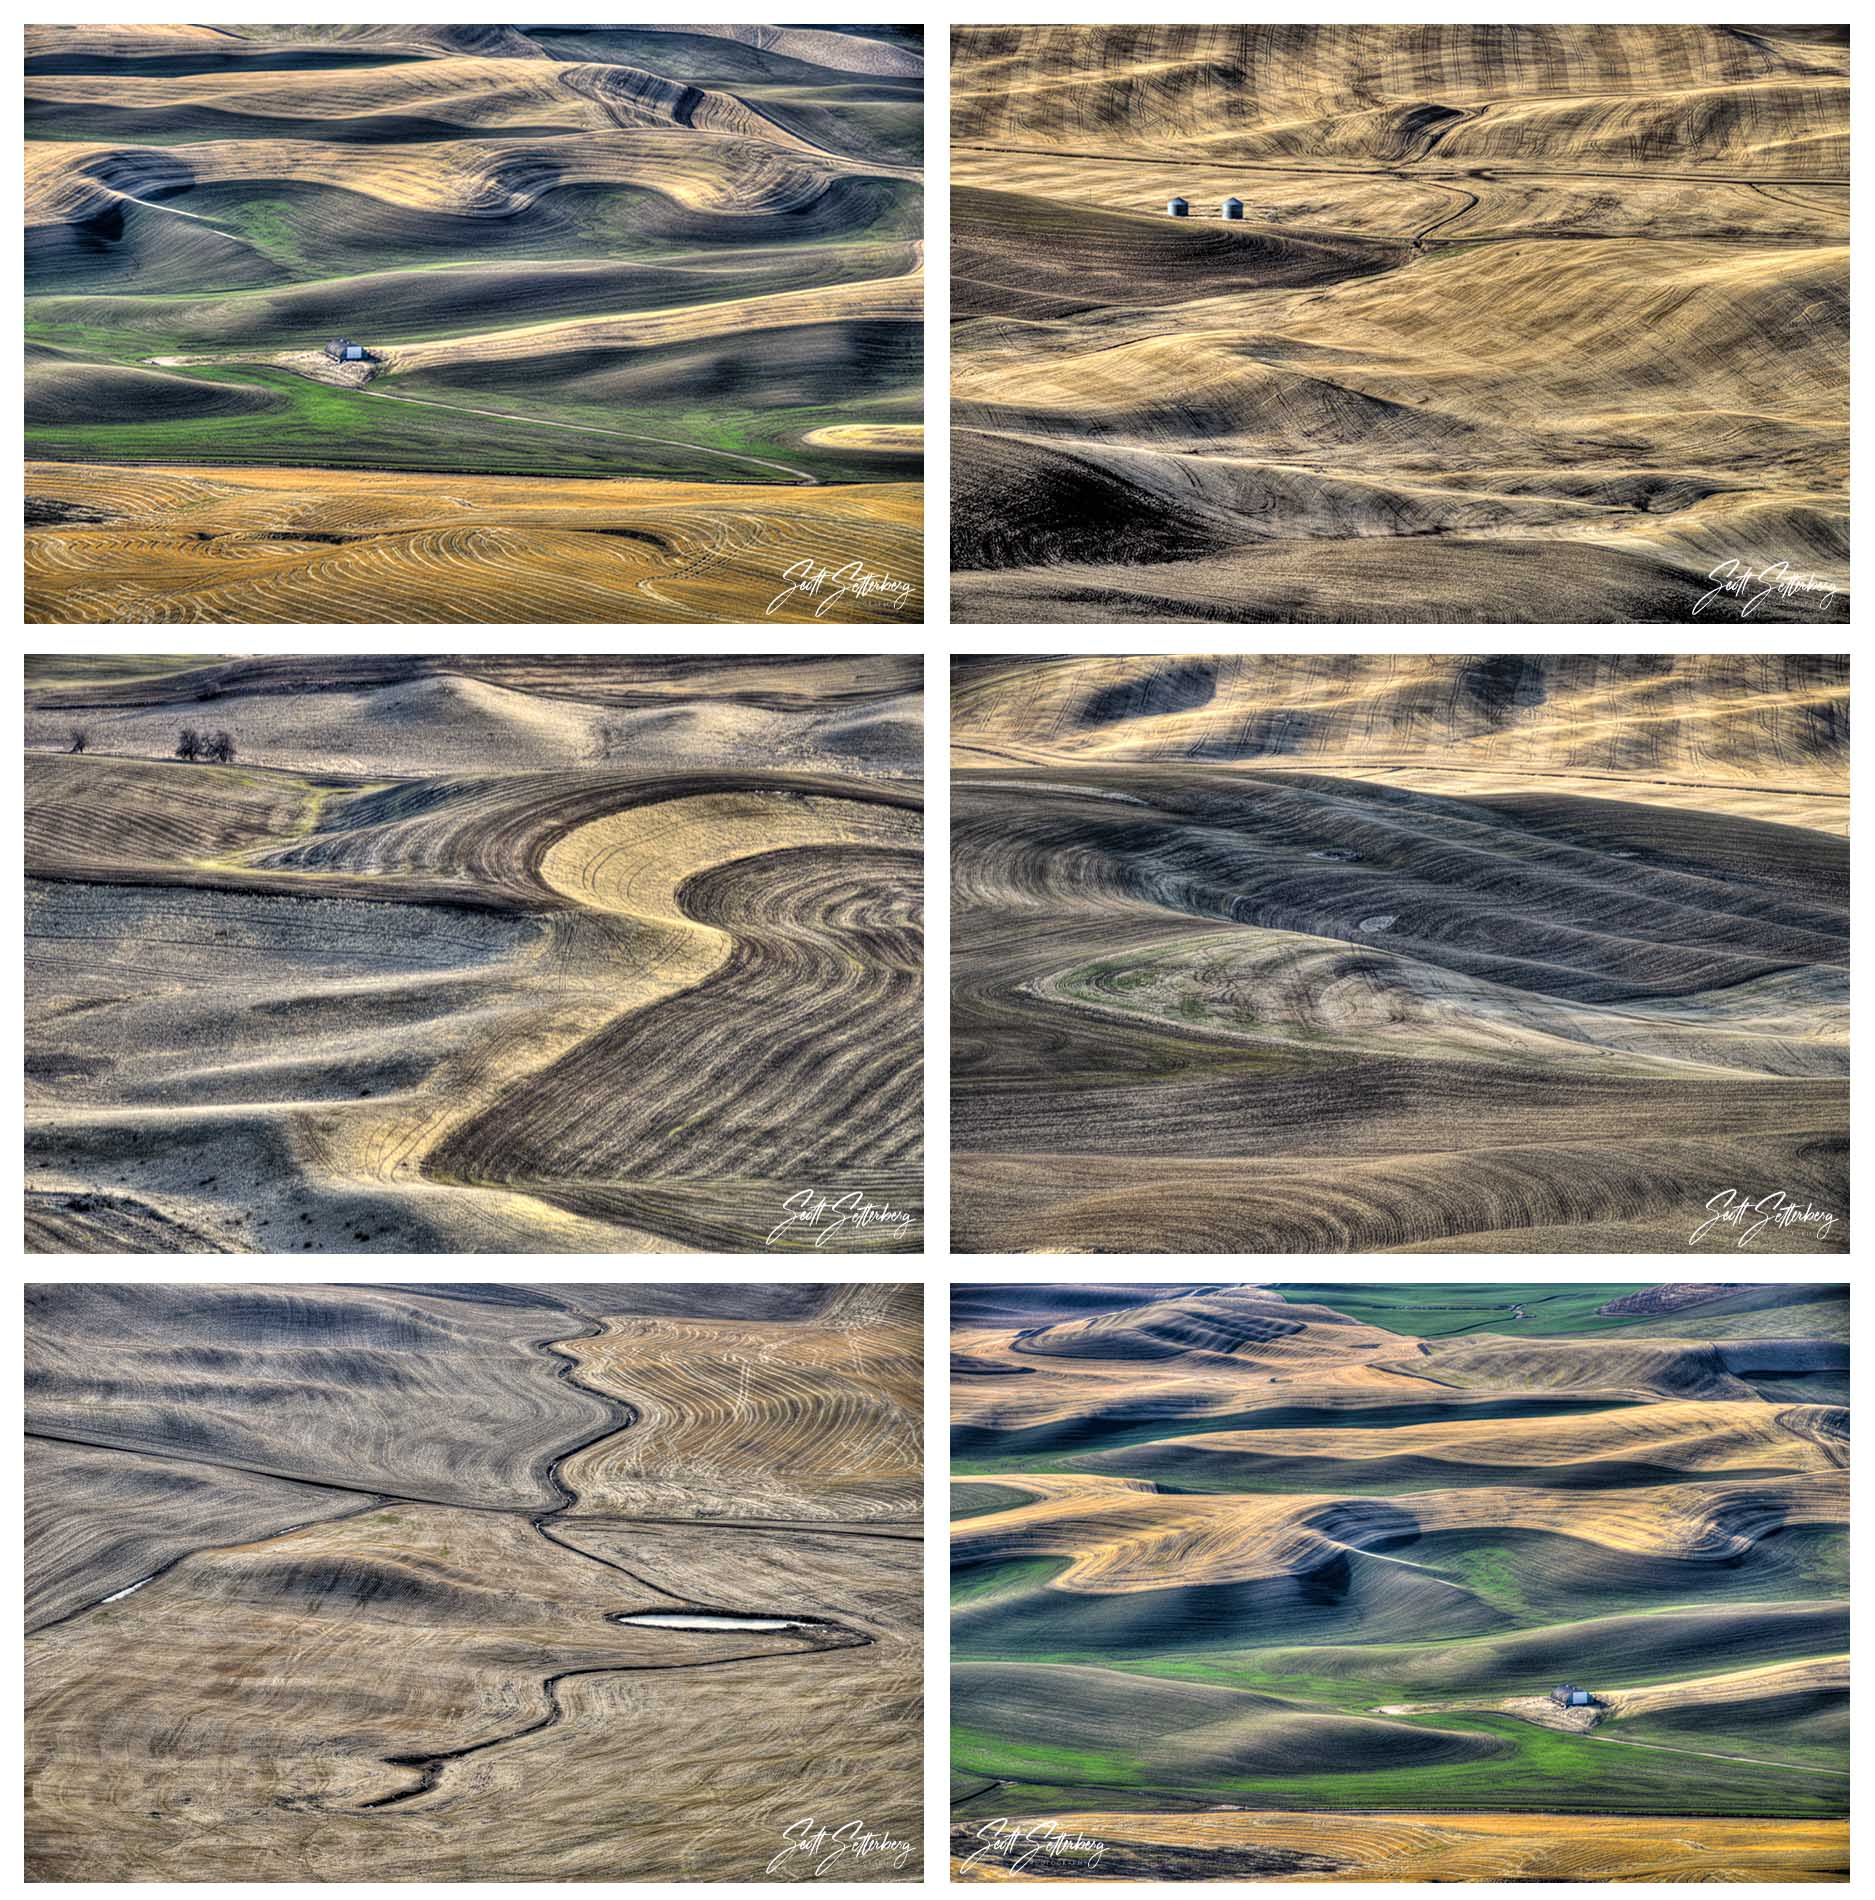 Kiona Vineyards, Palouse Falls, Steptoe Butte, White Bluffs, White River Falls